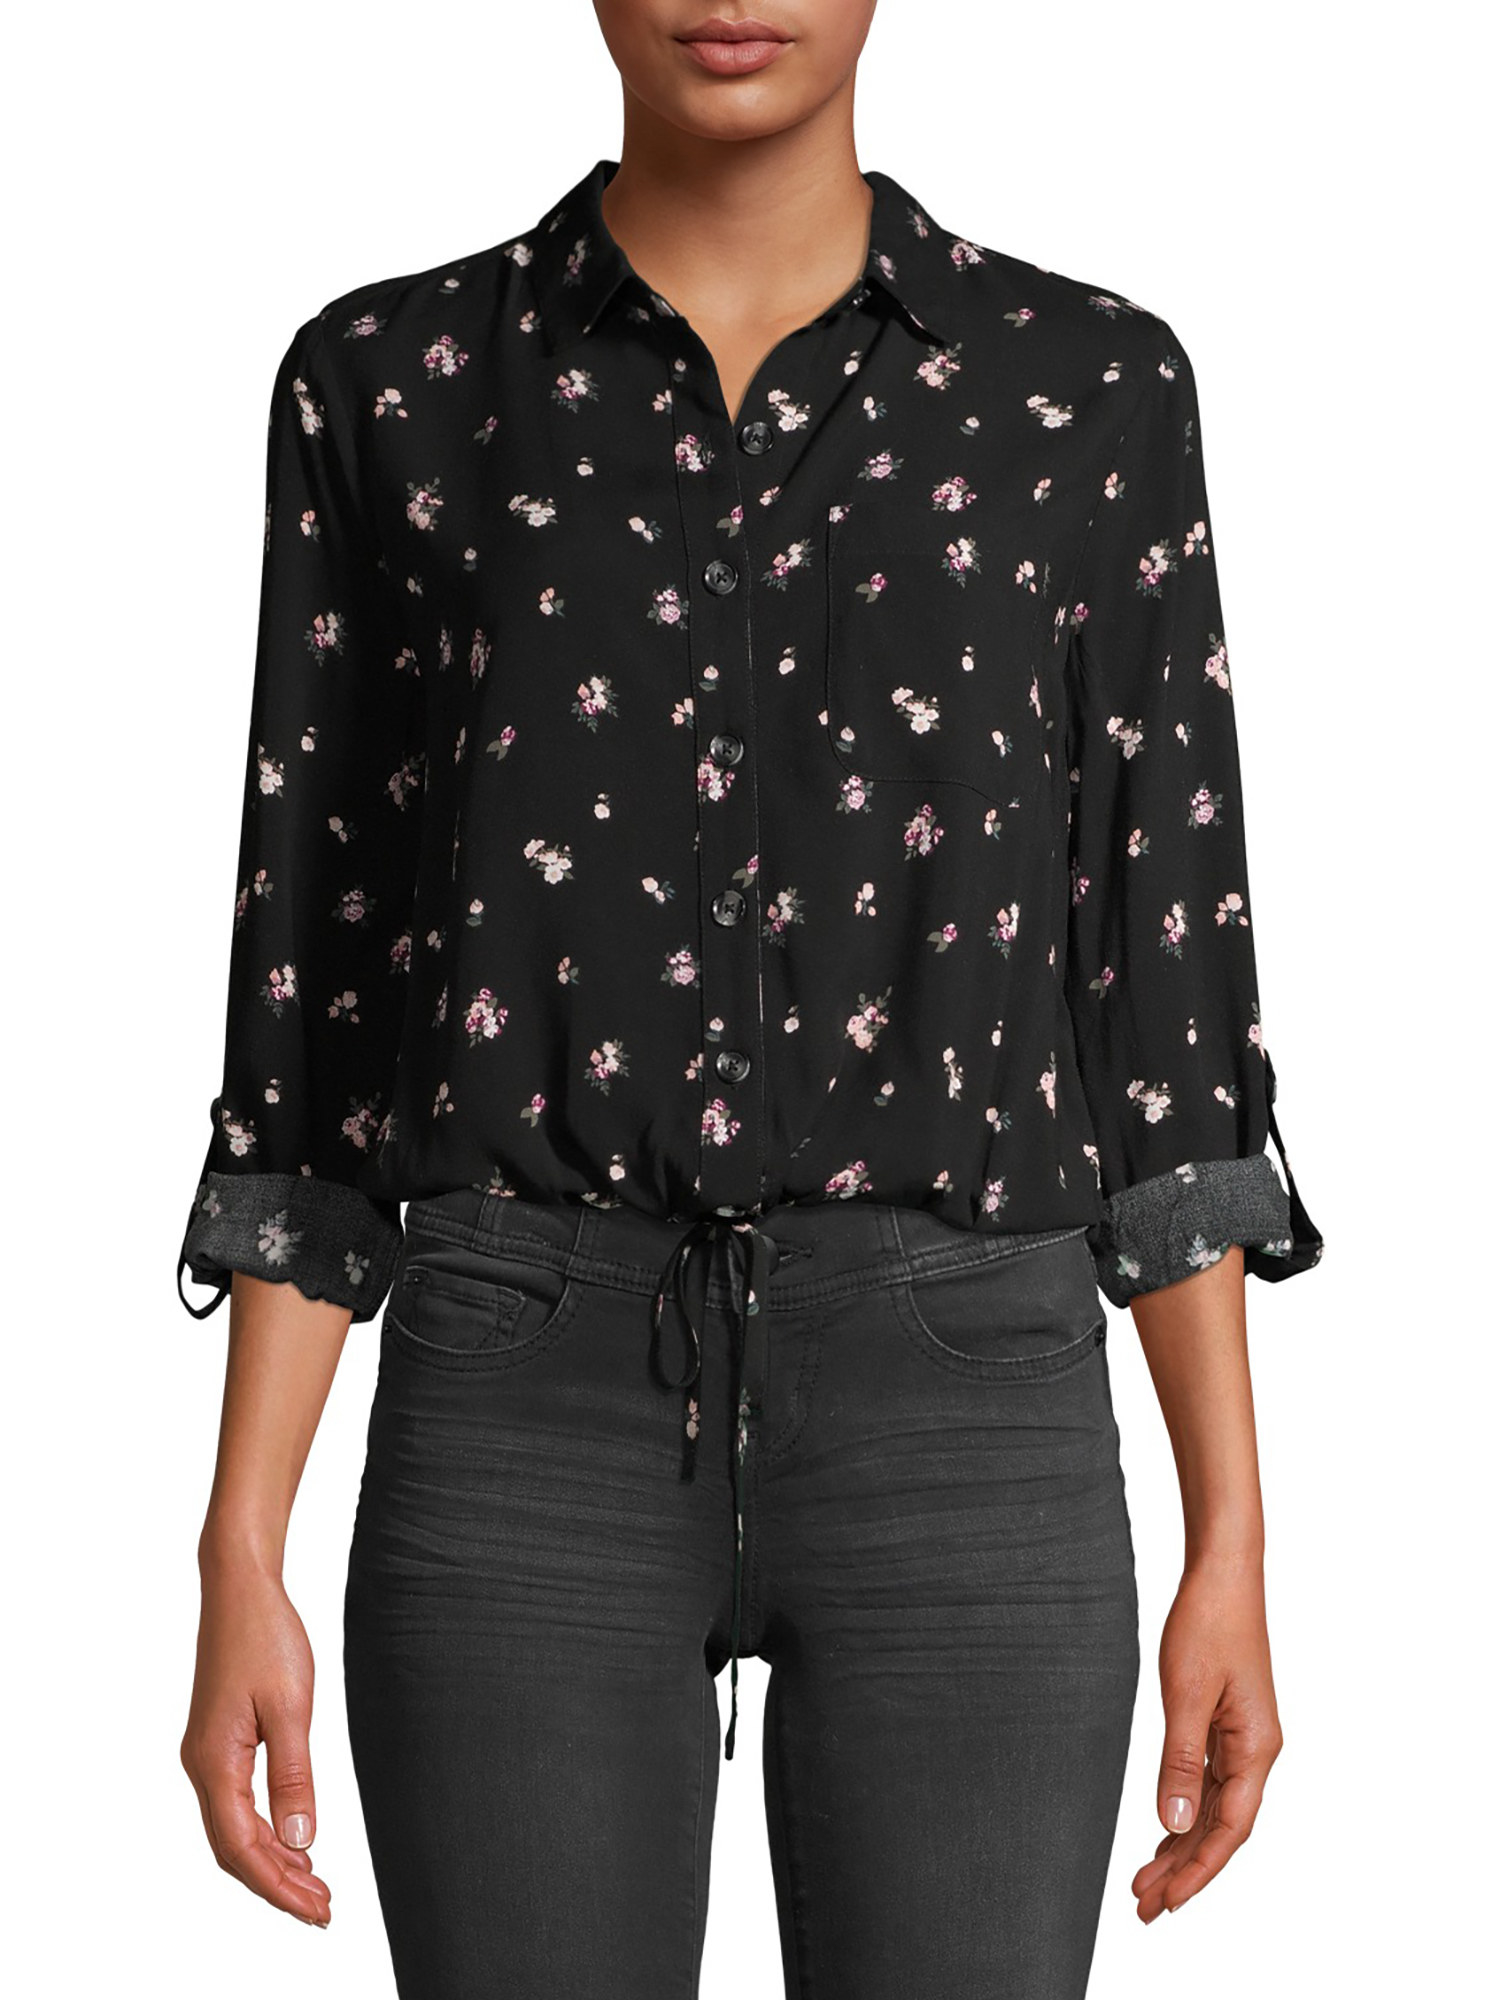 person wearing a black printed top with black jeans